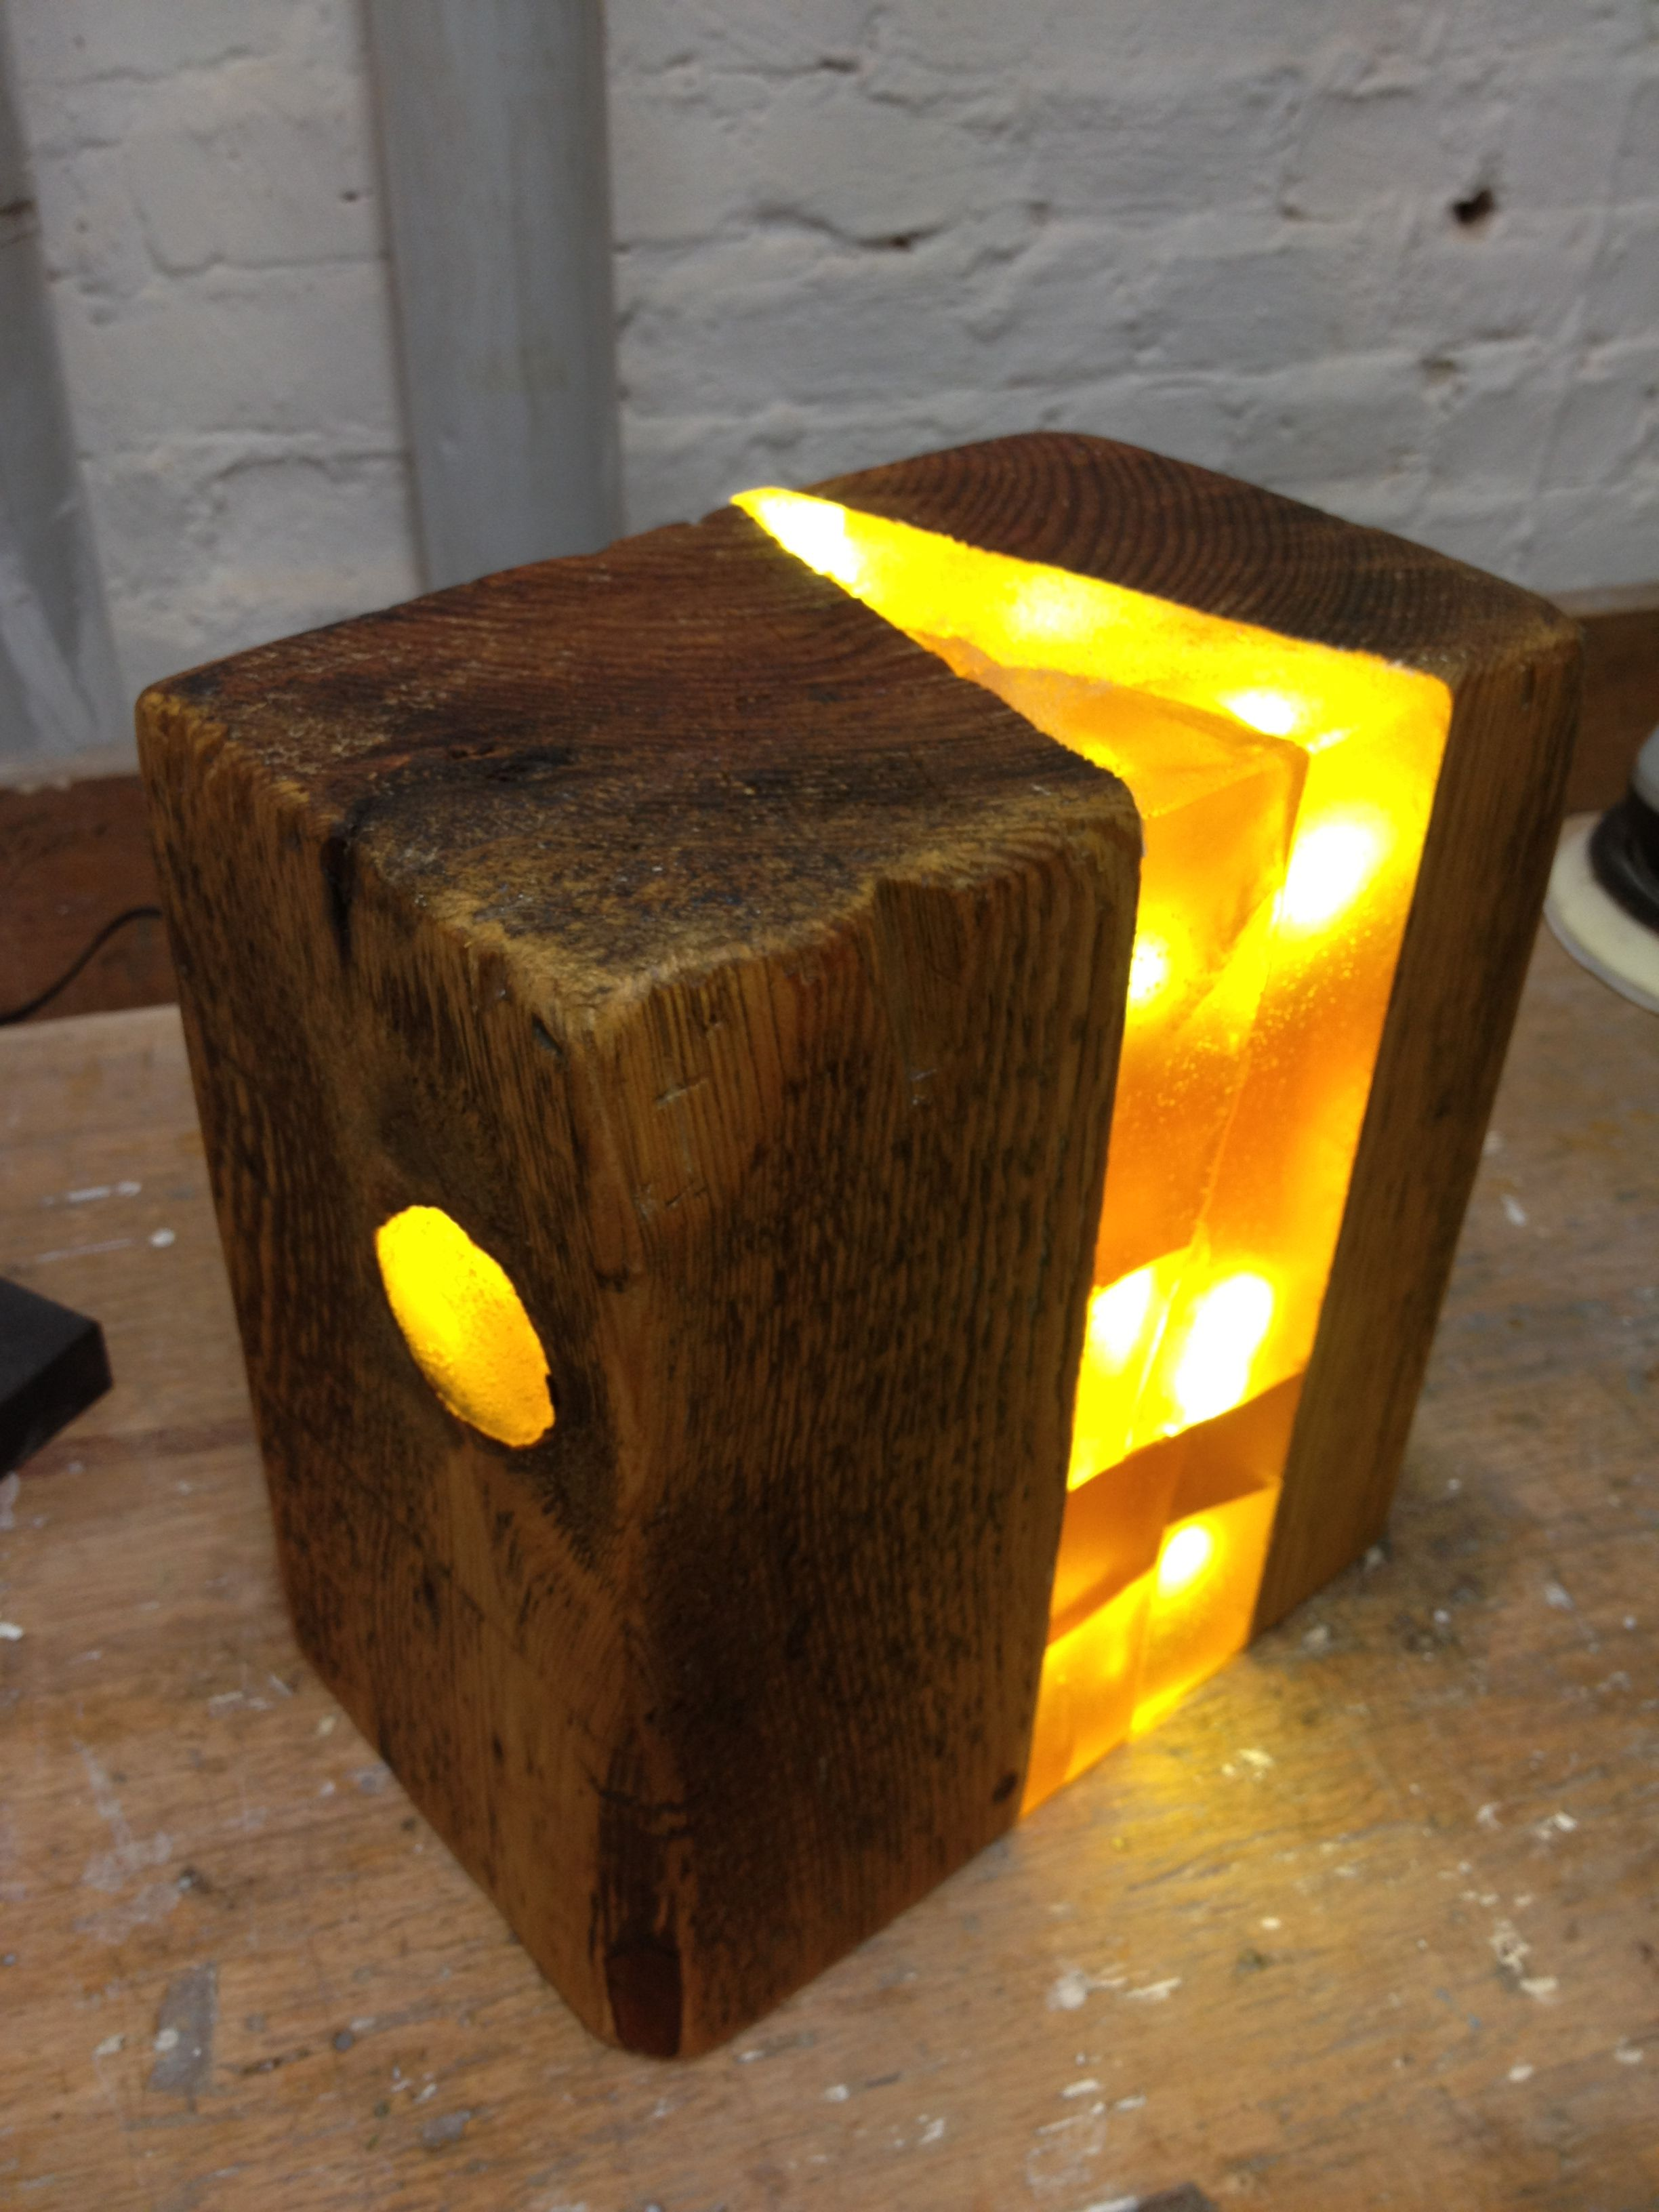 Cast Wood Art : Light sculpture made from old block of wood with leds